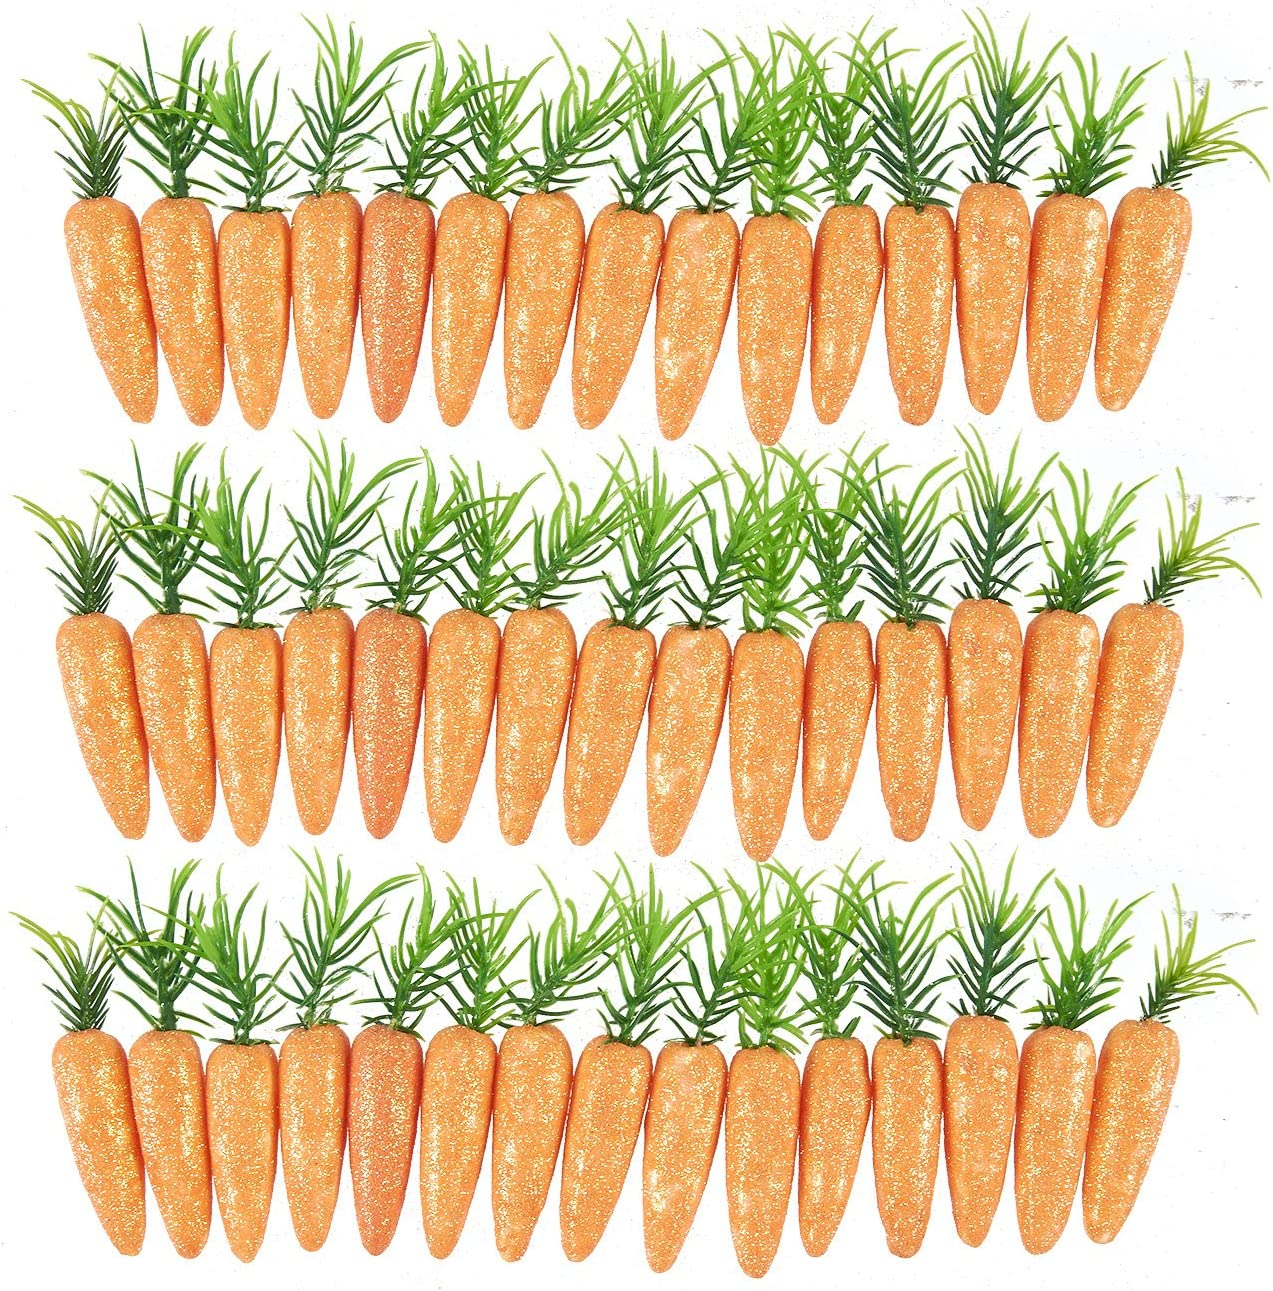 Juvale Fake Carrots – 45 Pack Artificial Carrots - Sparkling Foam Baby Carrots - Great for Craft DIY, Home Decor, Kitchen Decor, Party Decoration, Open Houses, Toy, 3 x 0.5 x 0.5 Inches